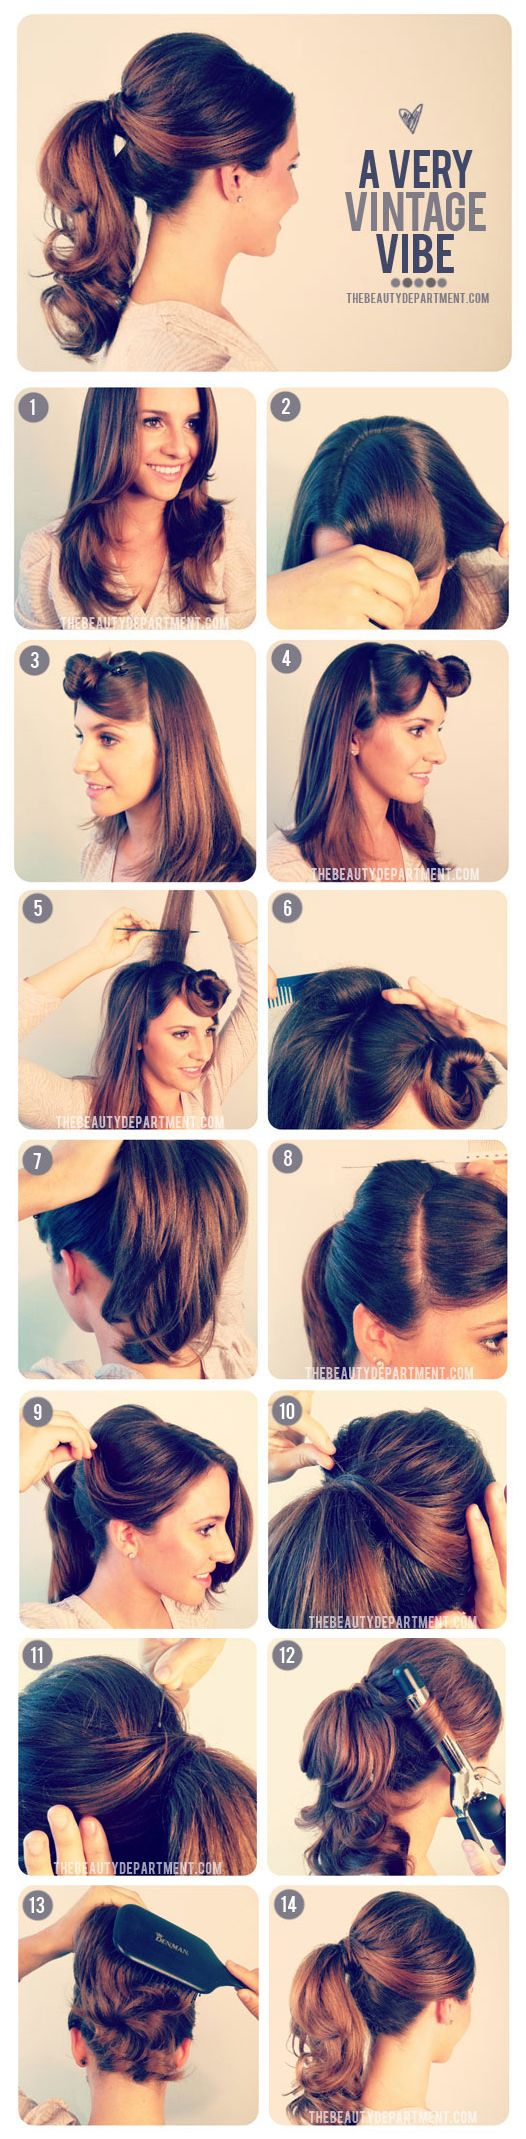 Swell My Hair Pony Tails And The Kid On Pinterest Short Hairstyles For Black Women Fulllsitofus